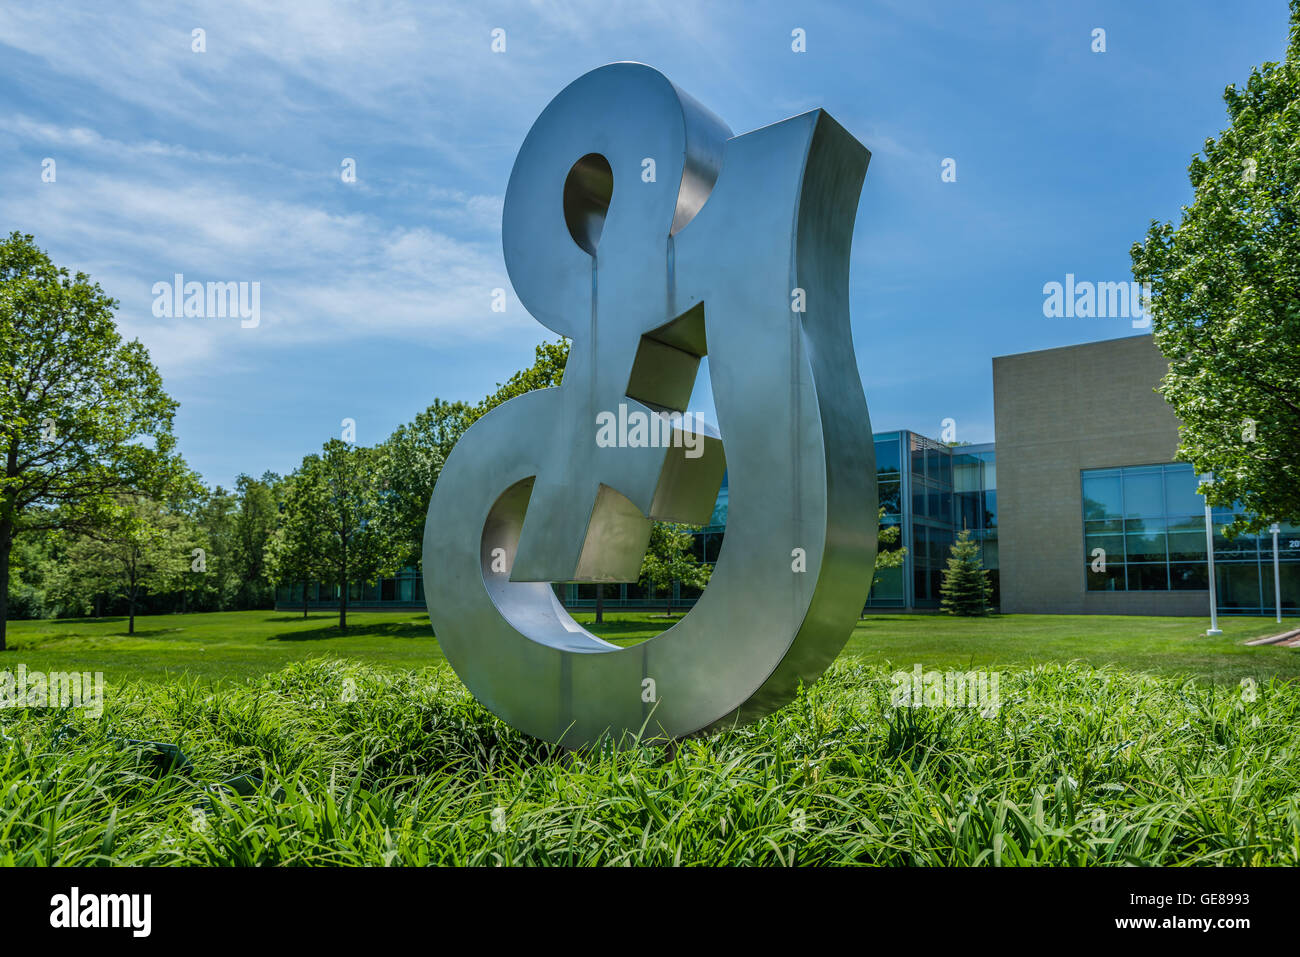 General mills corporate headquarters sign stock photo royalty free image 112050319 alamy - General mills head office ...